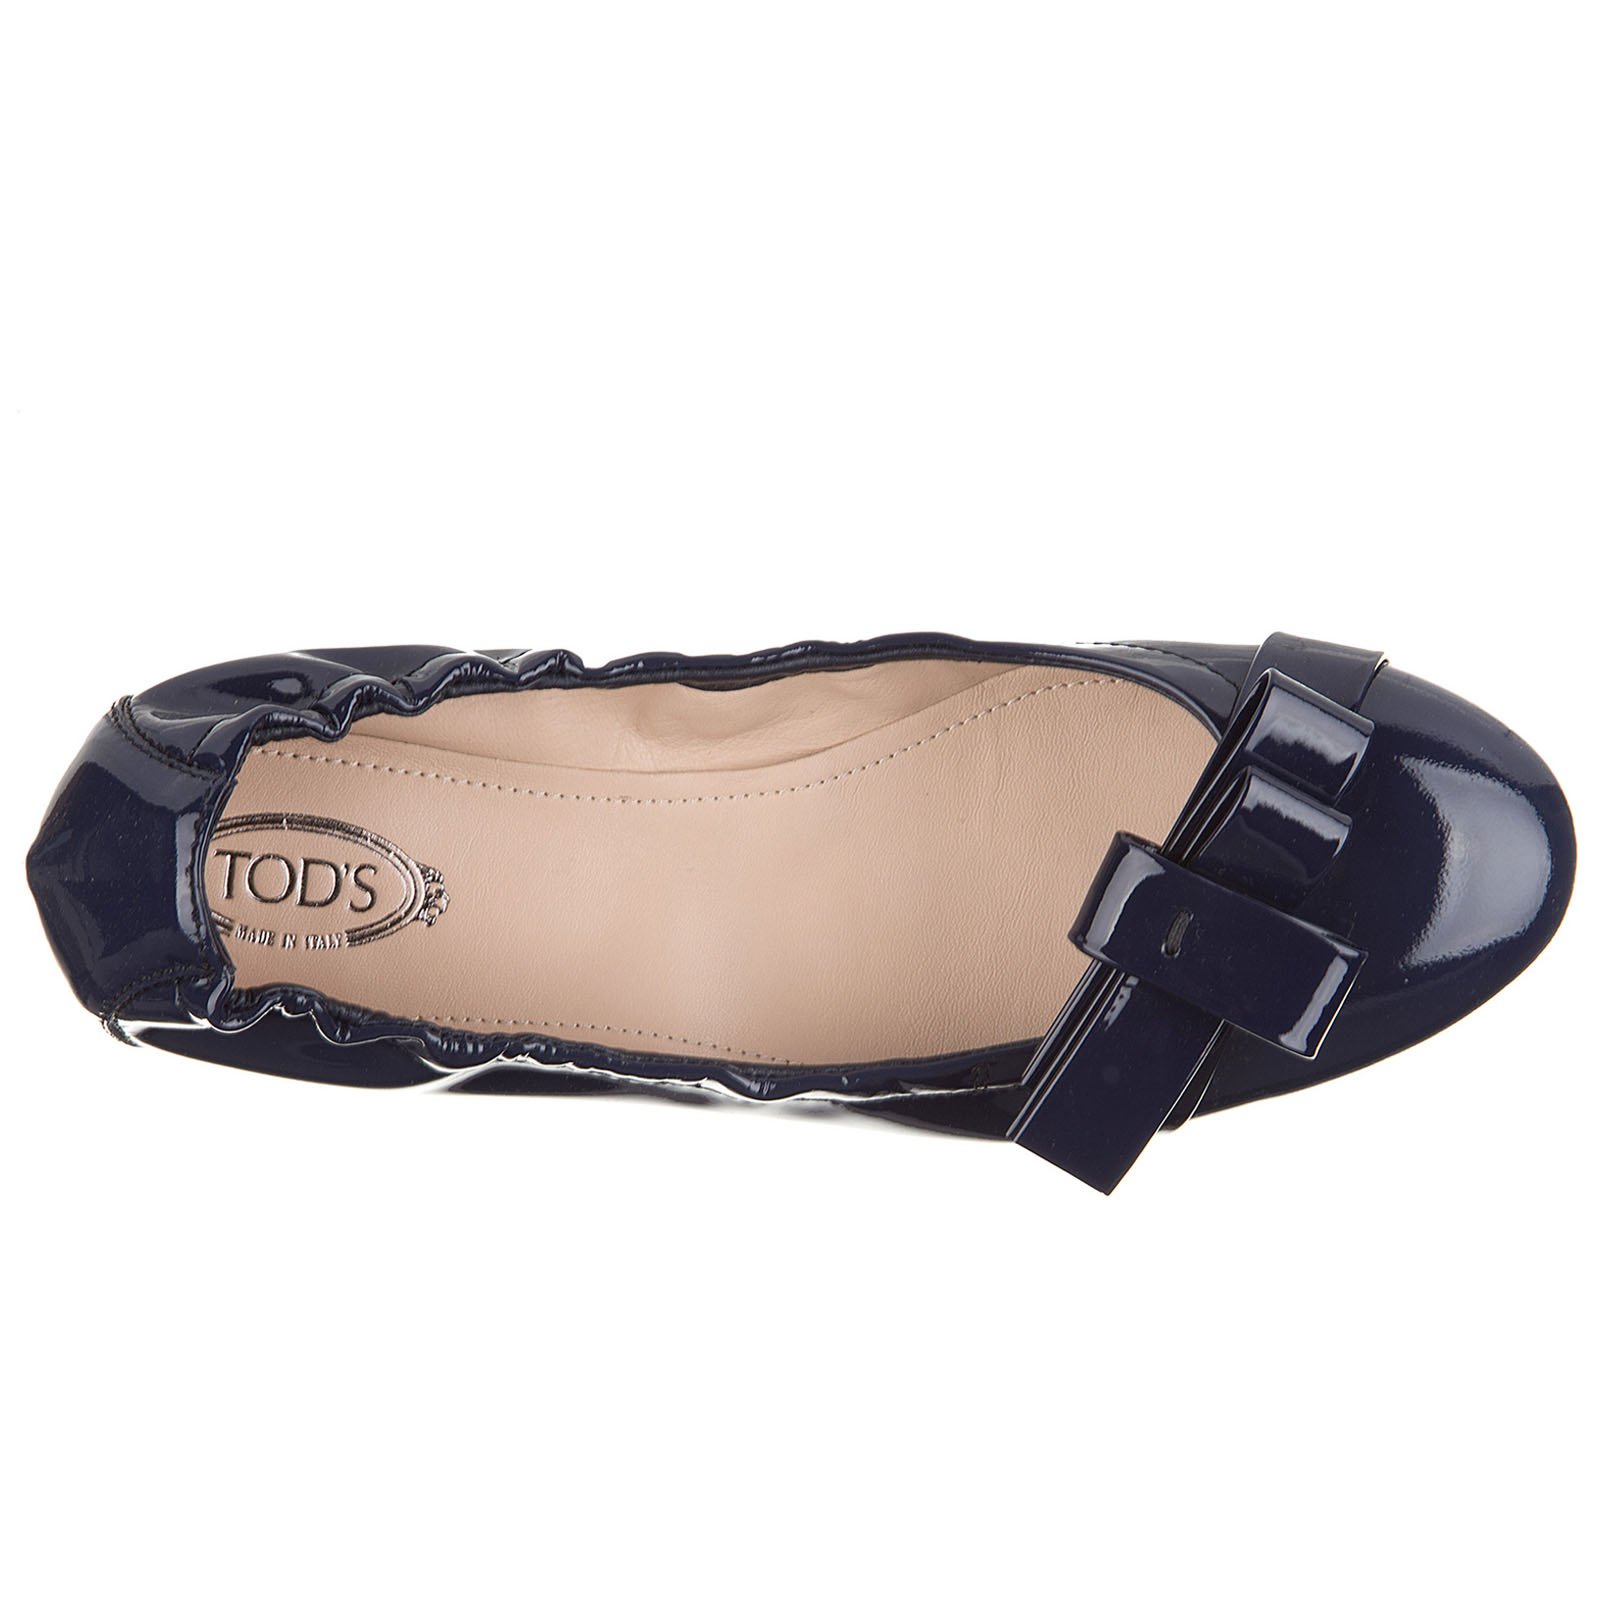 Women's leather ballet flats ballerinas  des yh bow